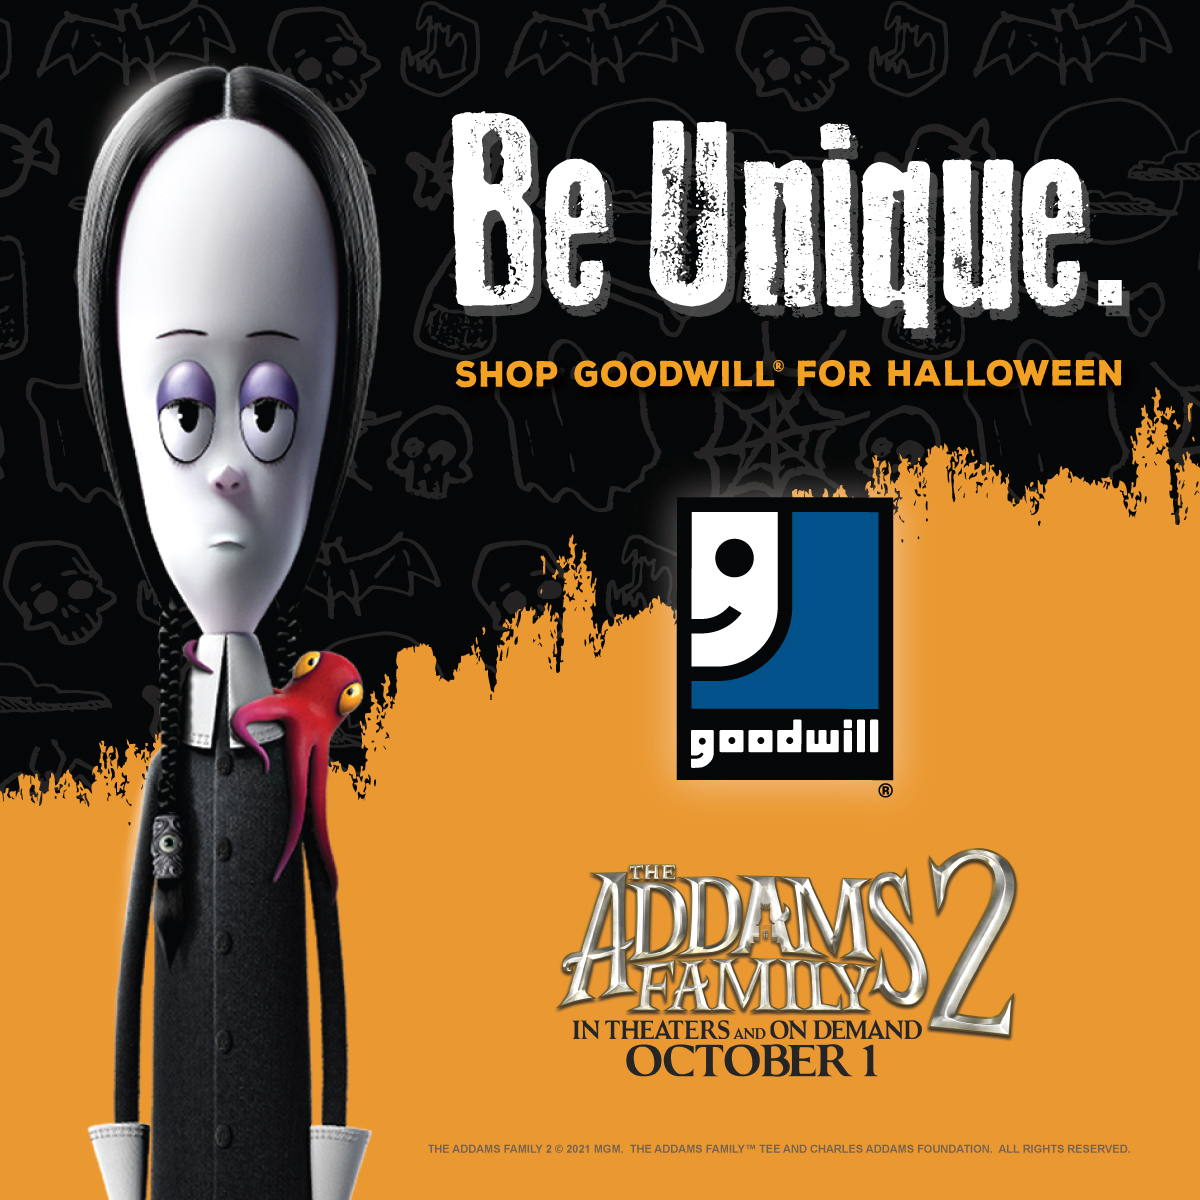 Be unique and find a spooky costume at your local Goodwill store this Halloween season.